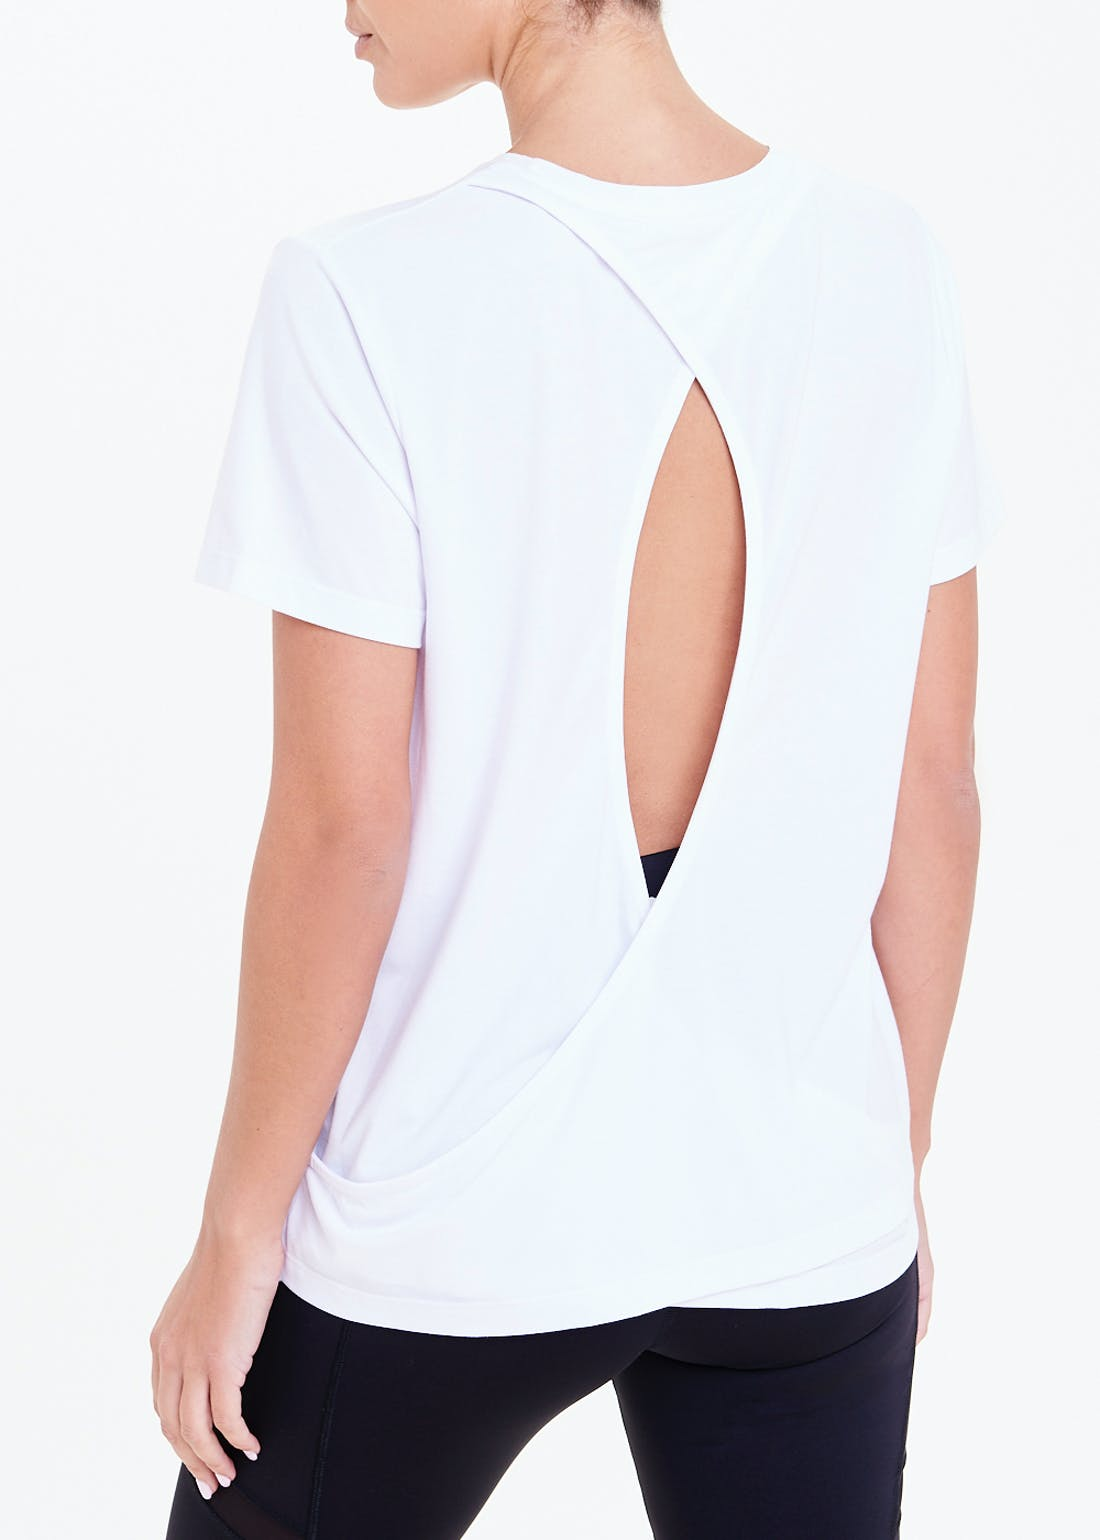 Souluxe White Open Back Gym Top